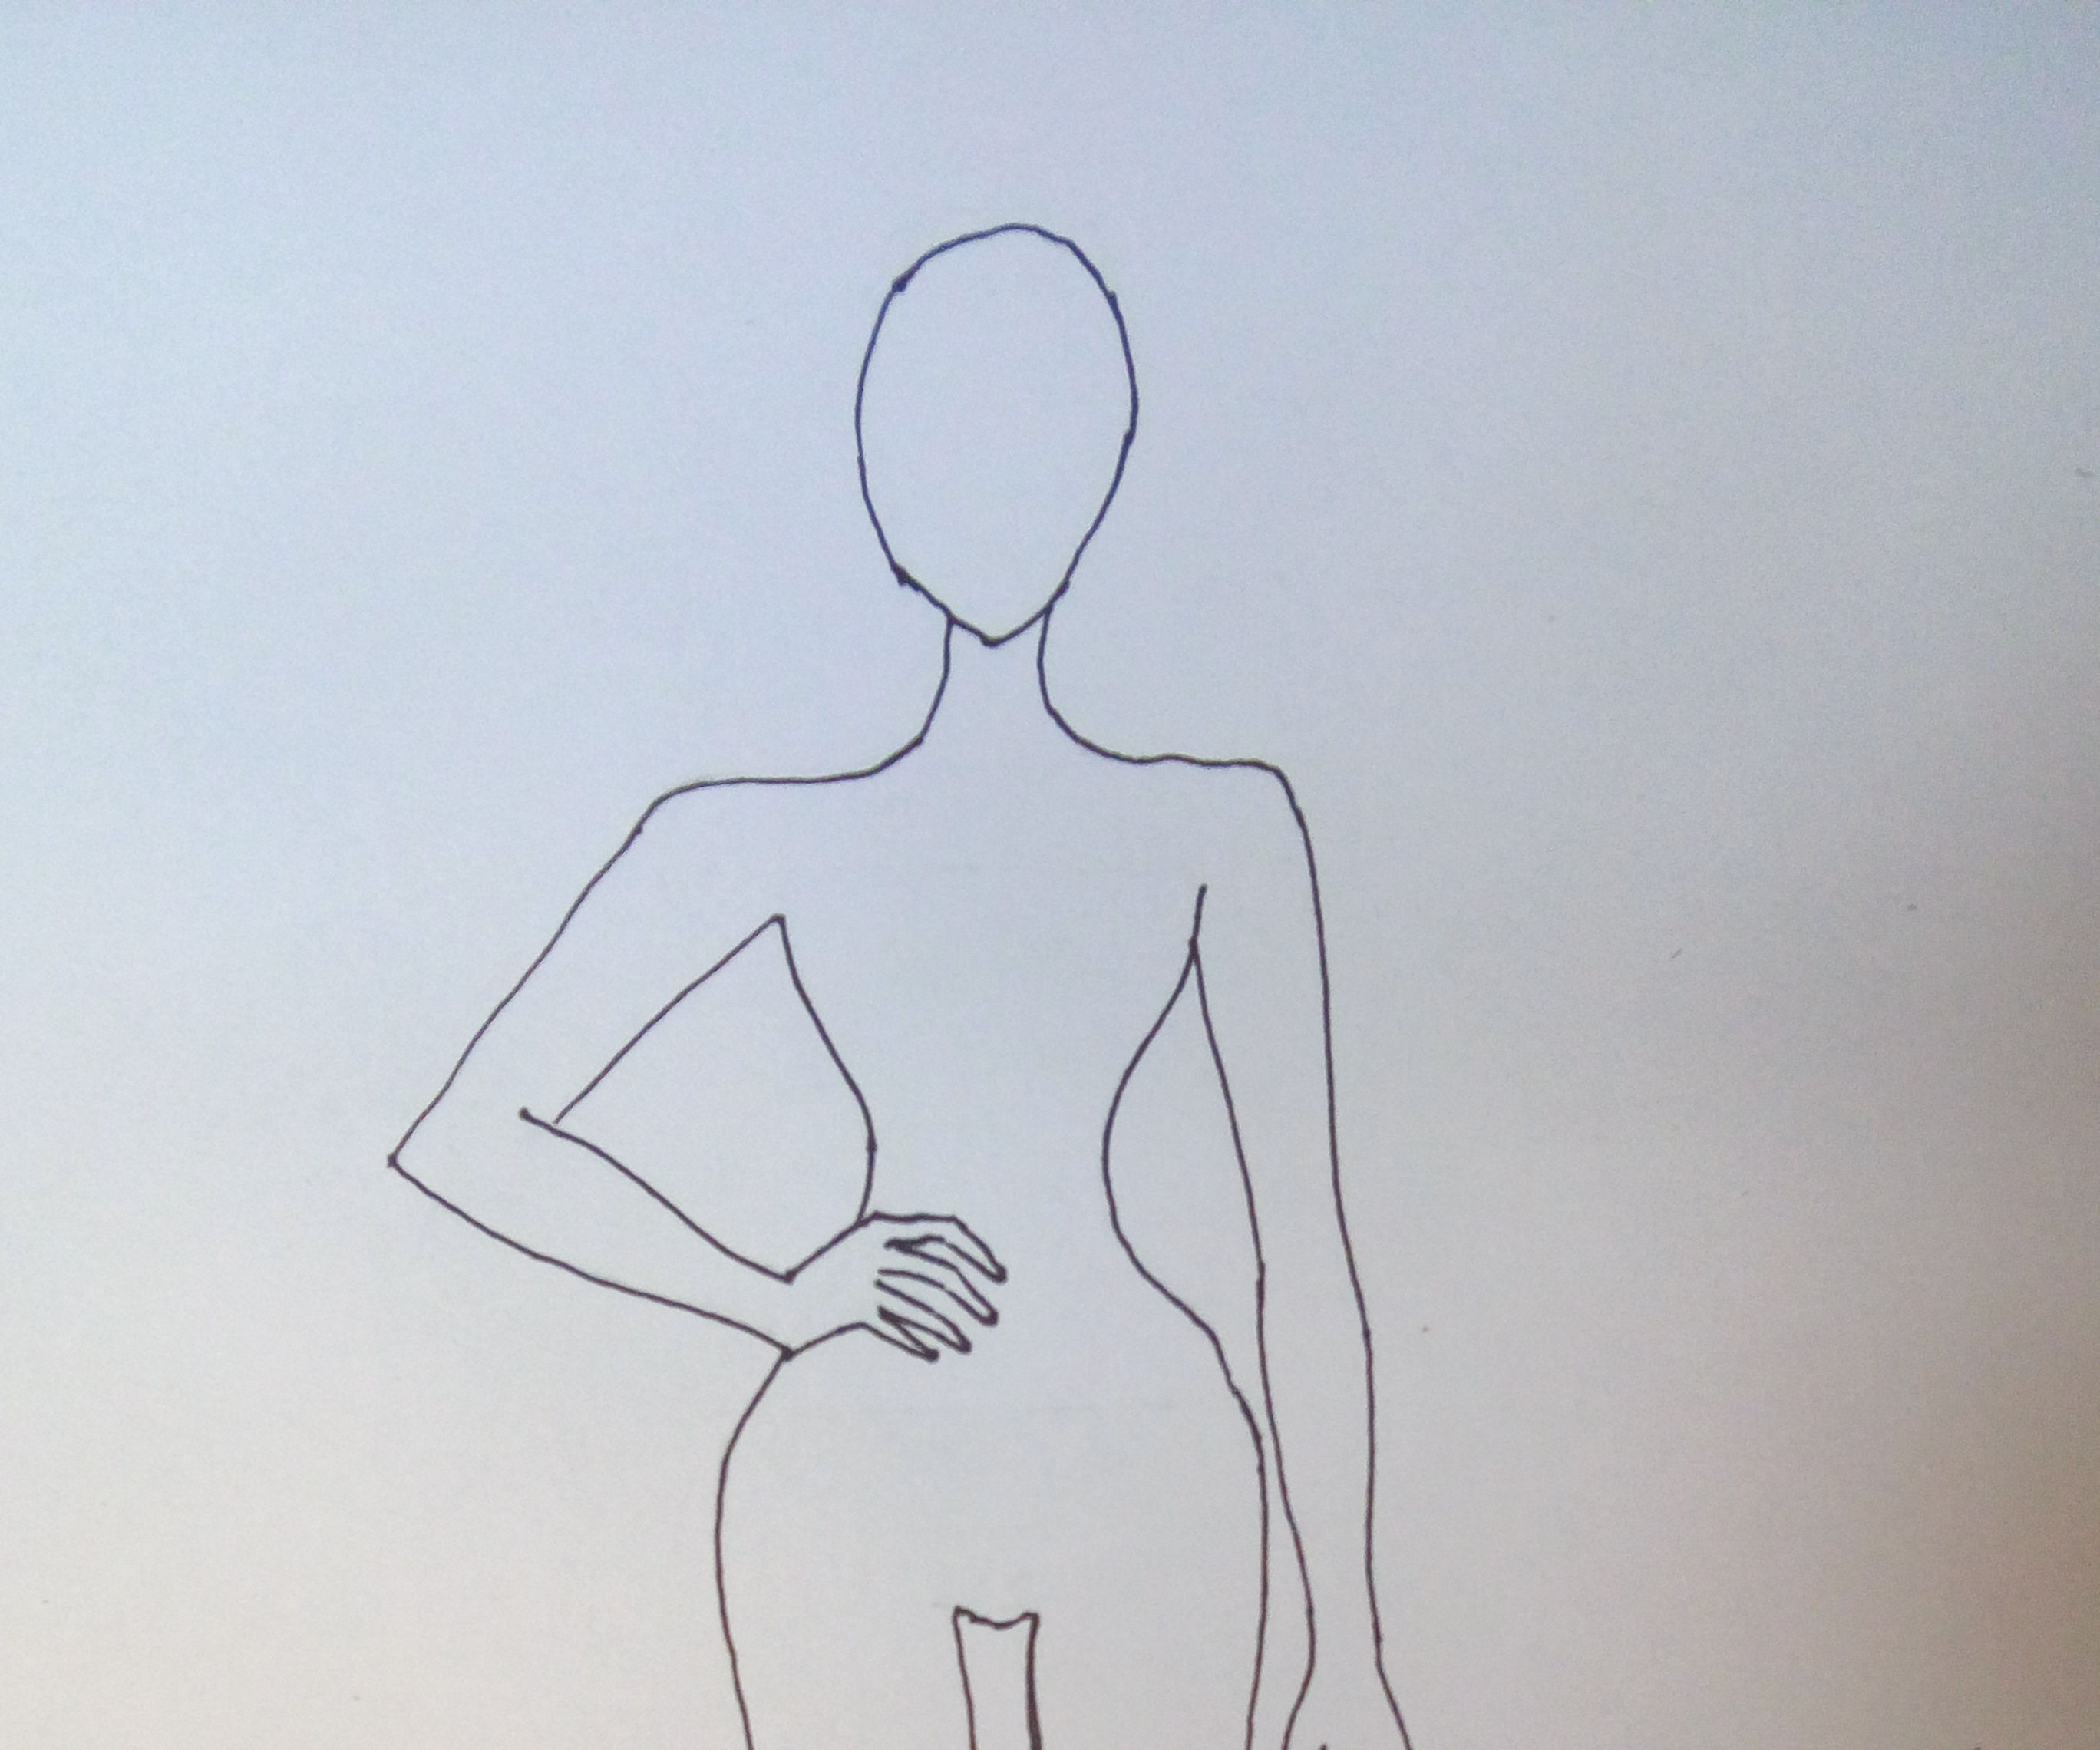 How to Draw a Simple Fashion Illustration